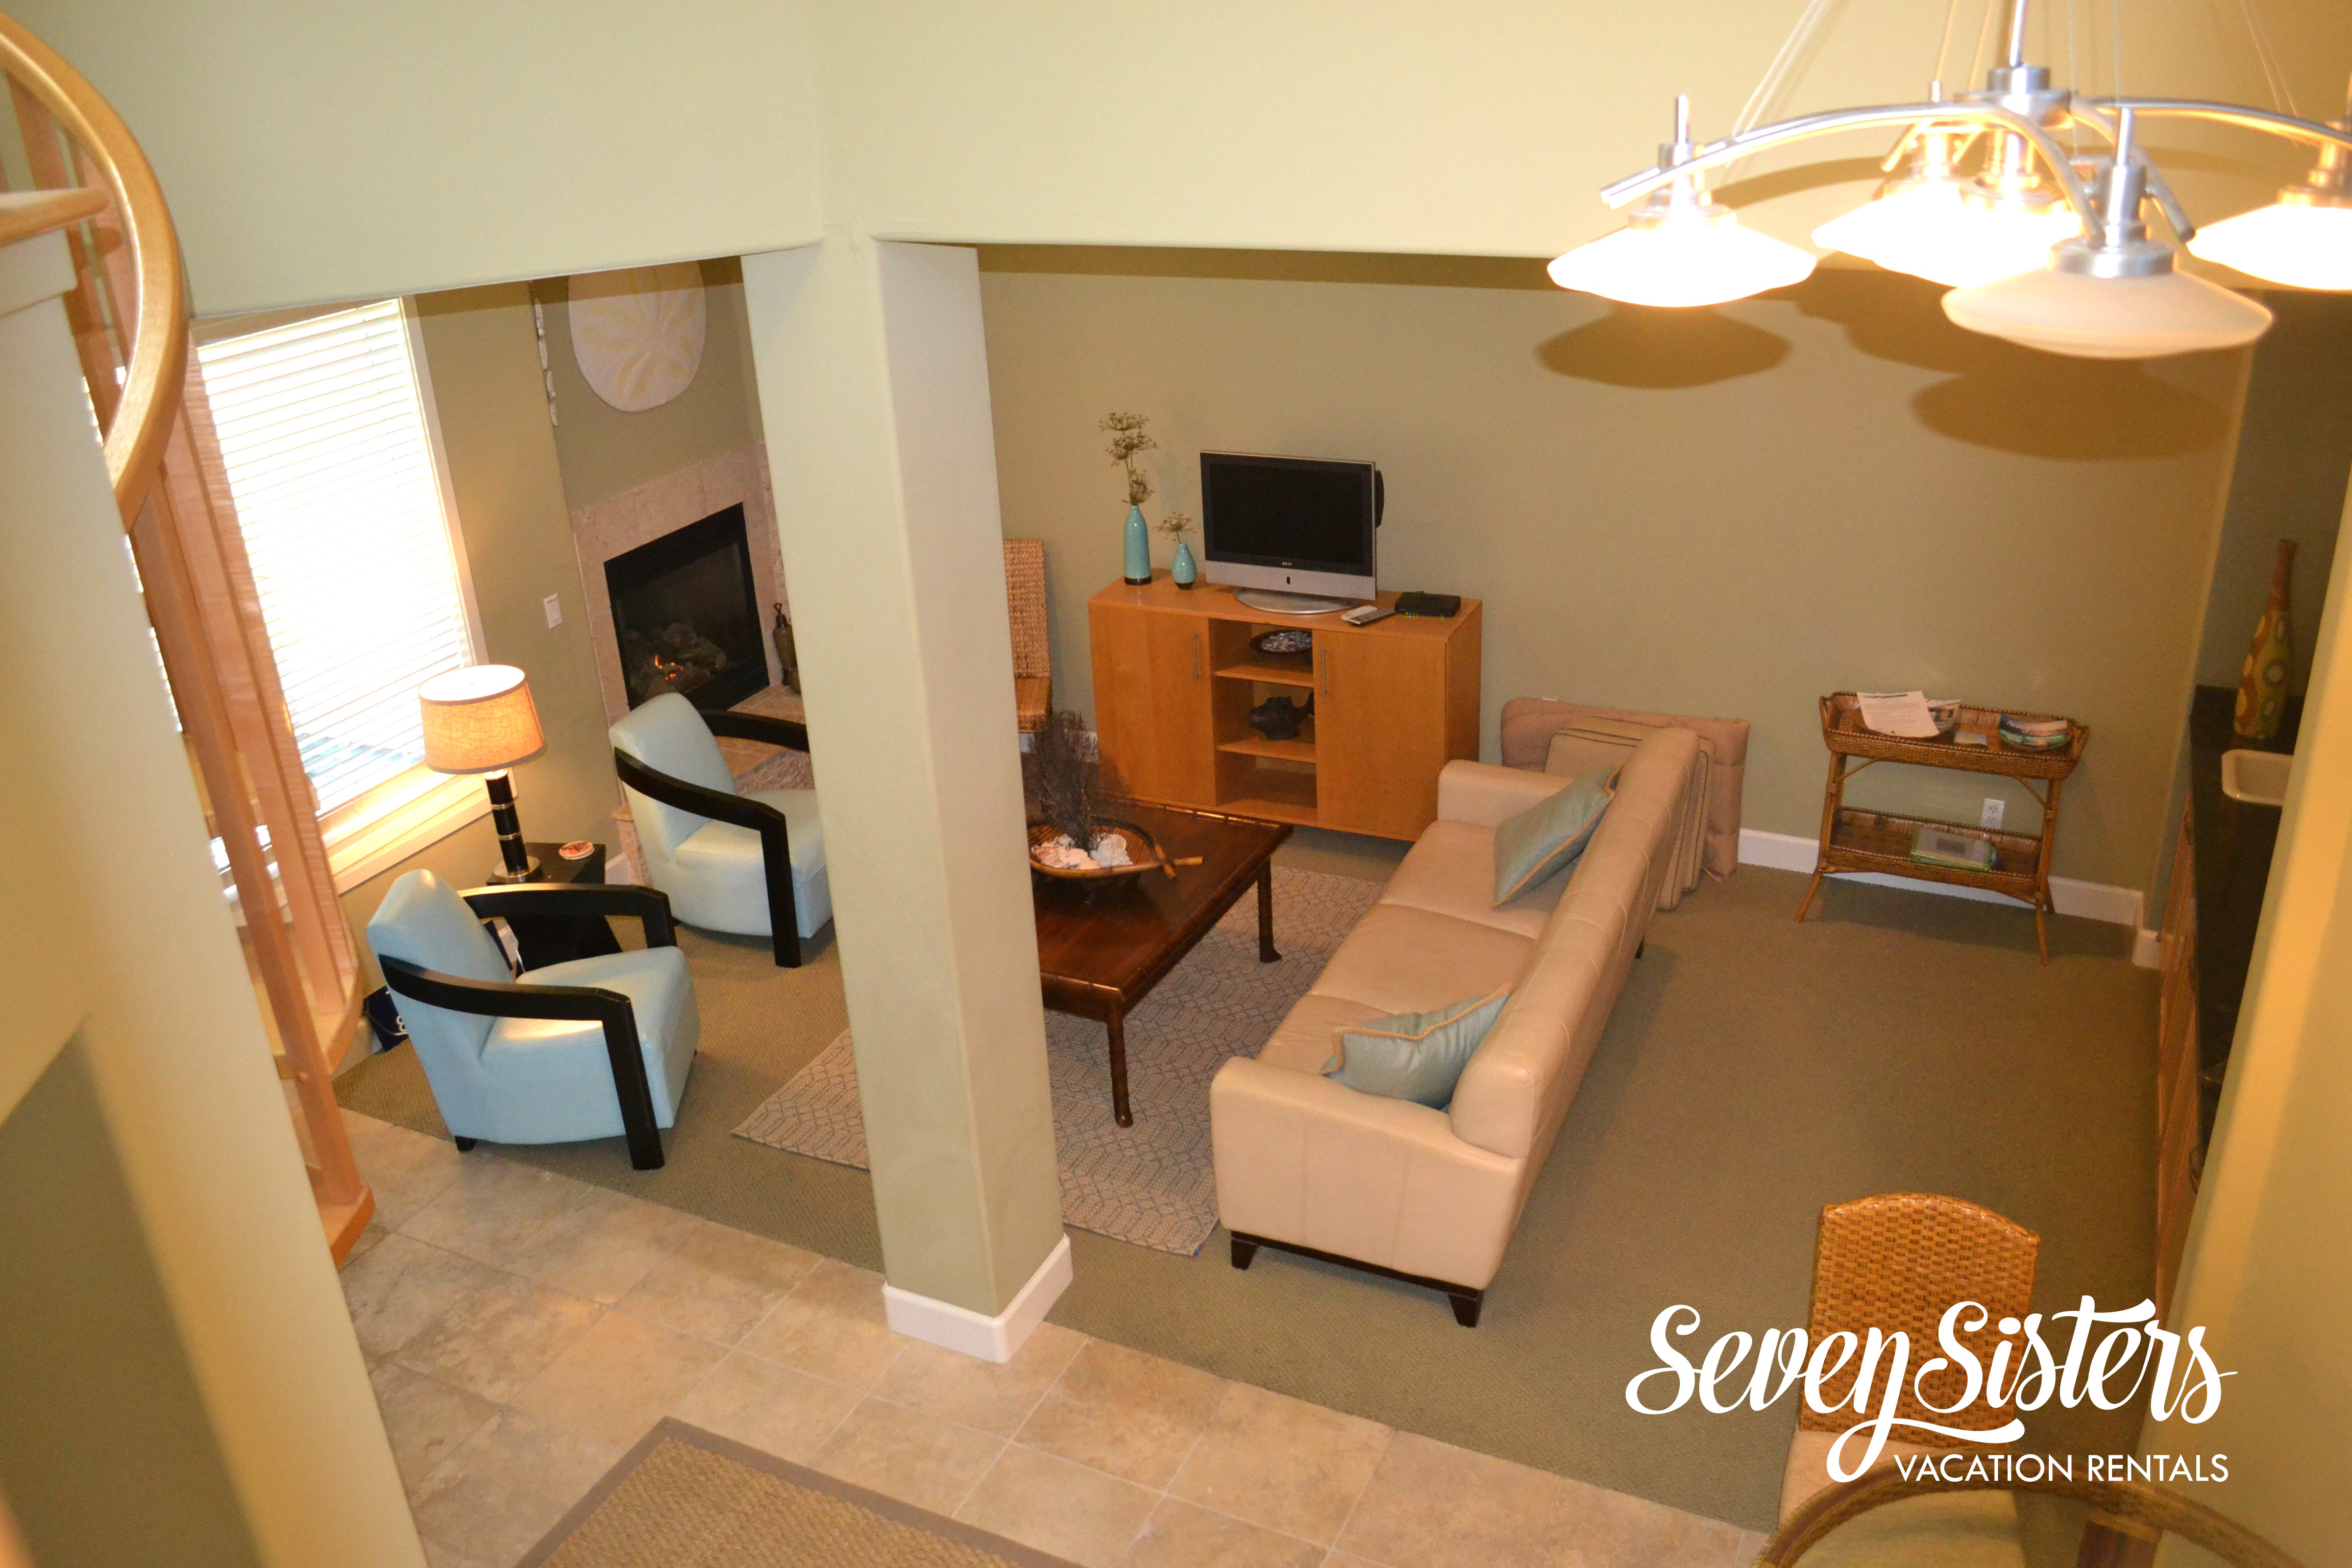 Seven Sisters Vacation Rentals image 1